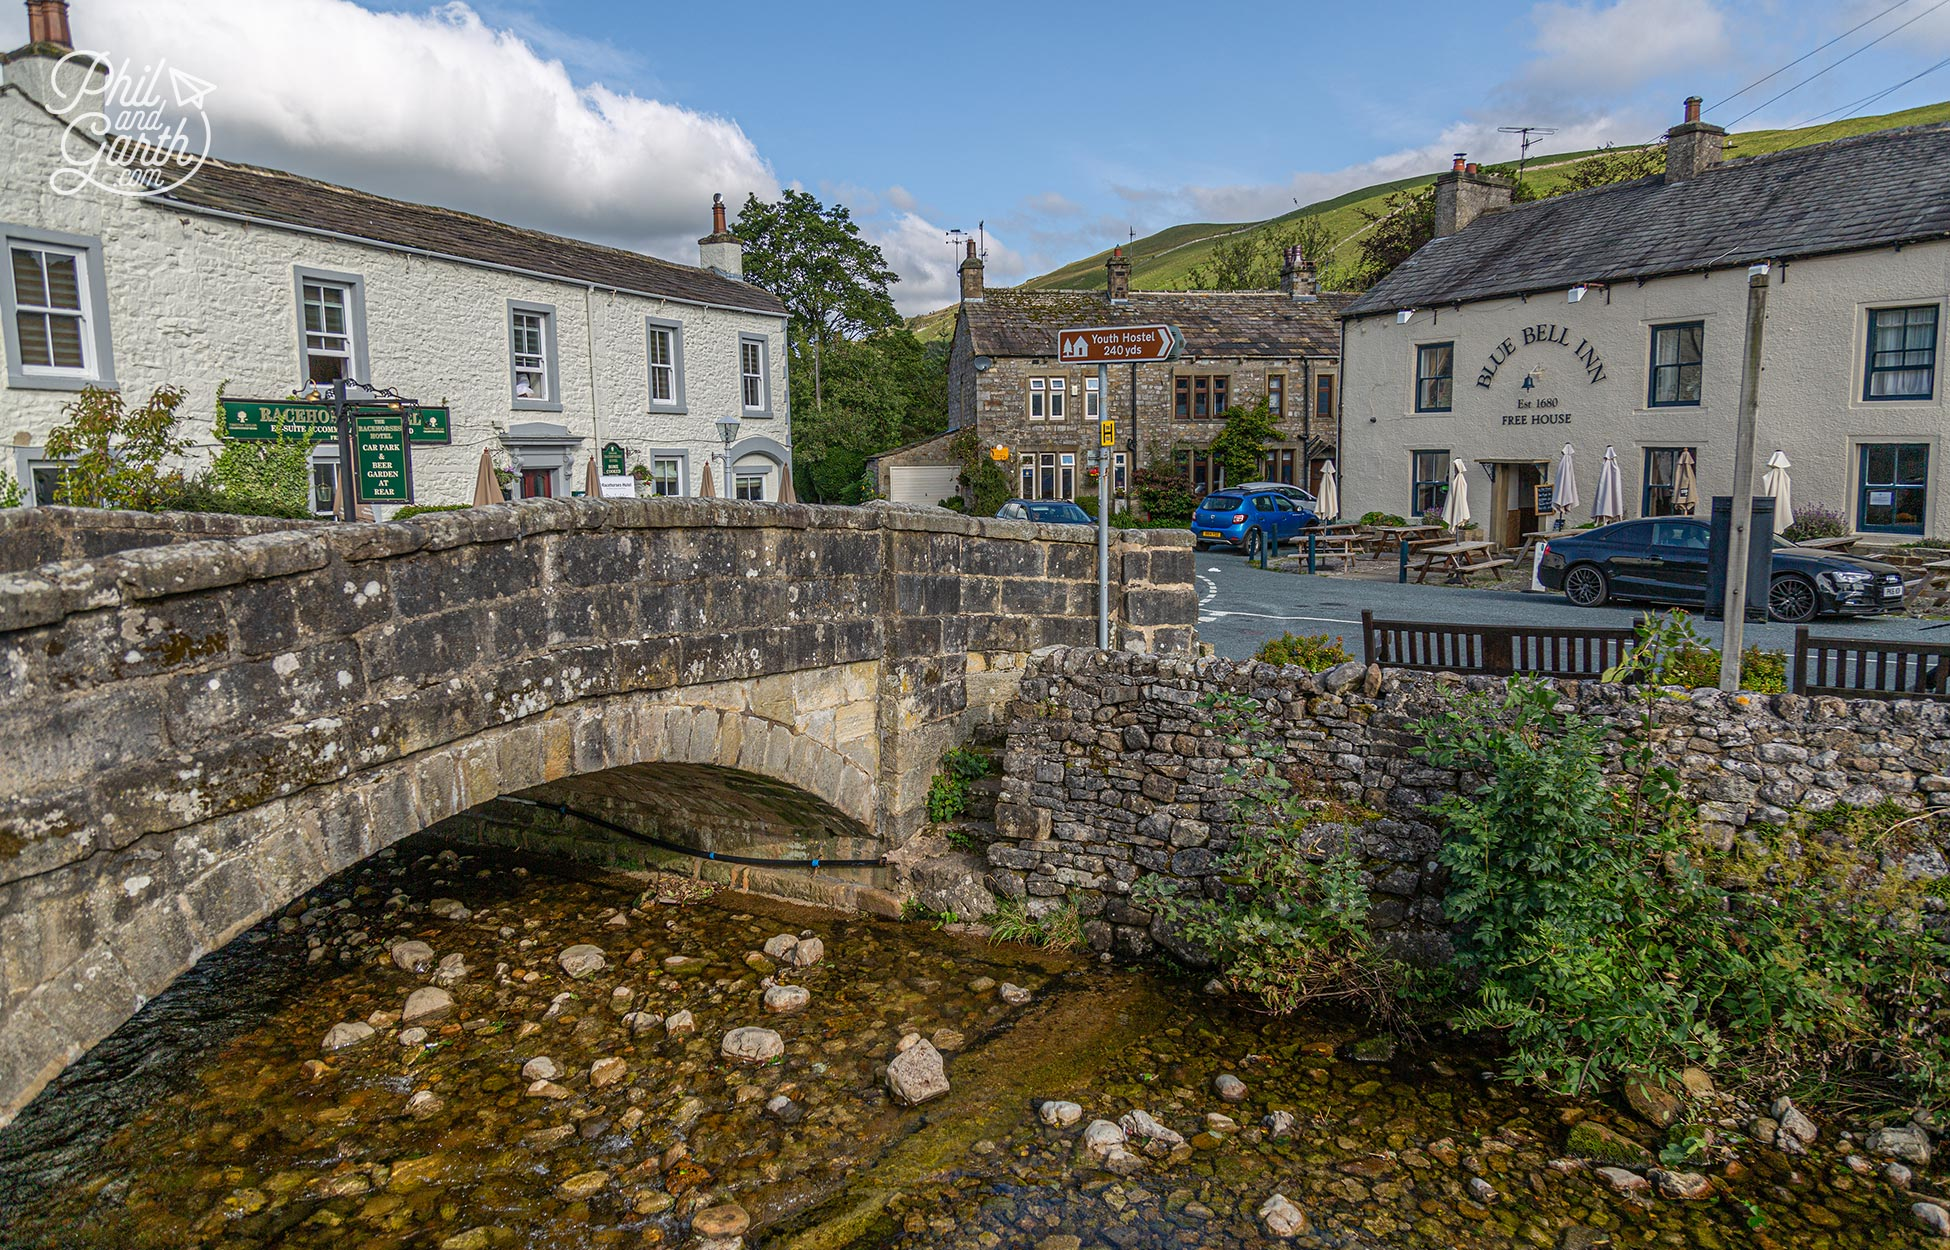 The charming village of Kettlewell where they filmed Calendar Girls